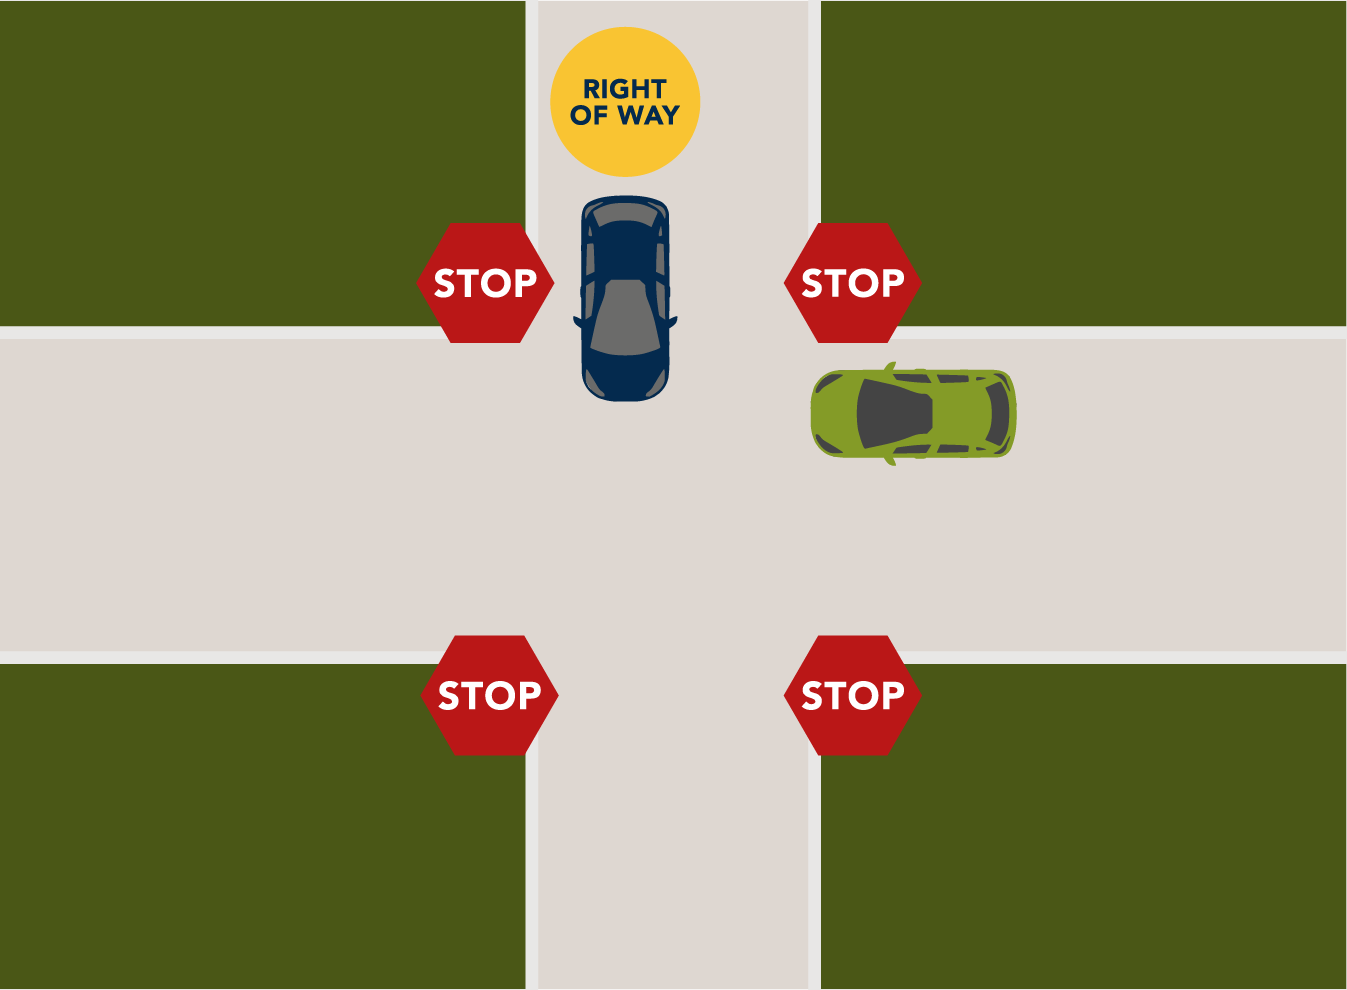 Driver furthest to the right has right of way.